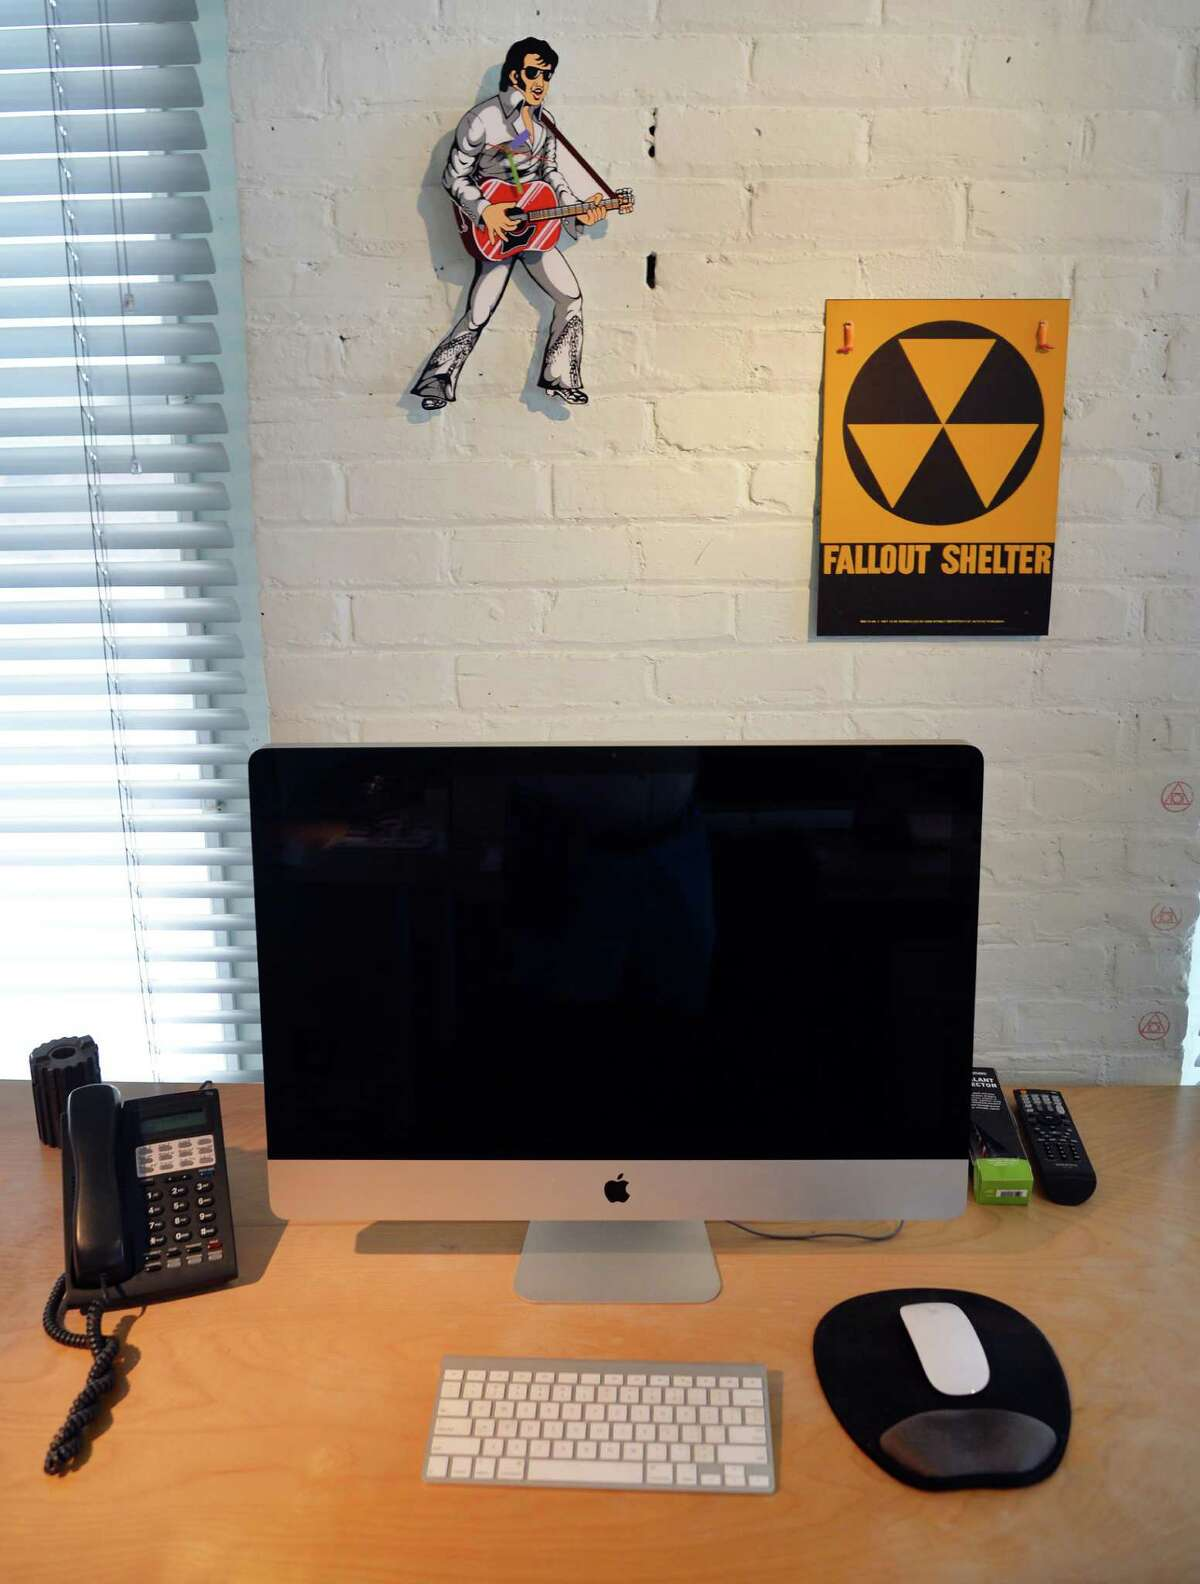 A work station at id29 design studio above Revolution Hall on River Street Wednesday May 14, 2014, in Troy, NY. (John Carl D'Annibale / Times Union)